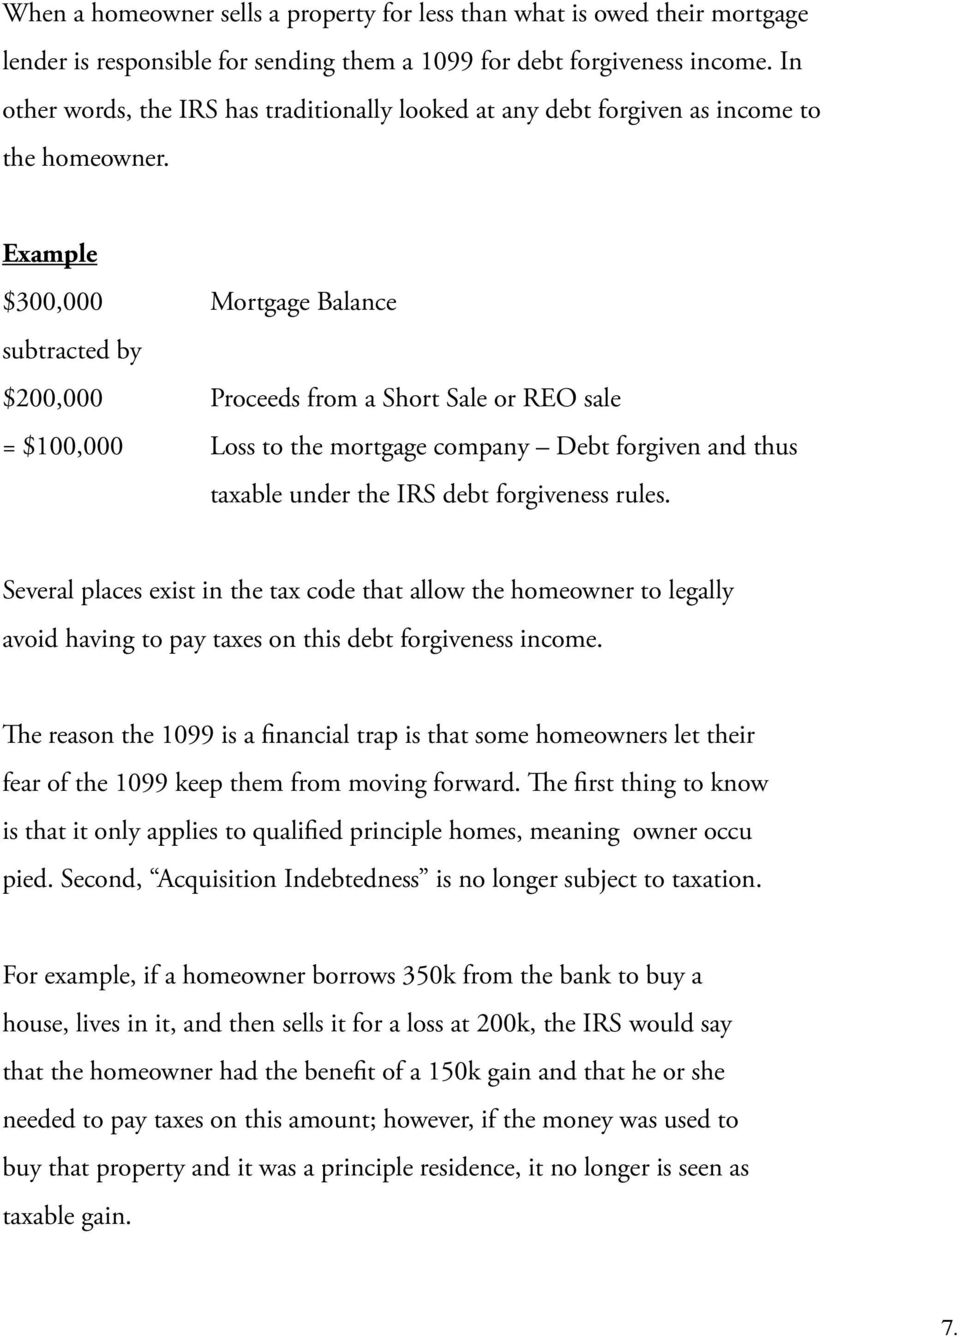 Example $300,000 Mortgage Balance subtracted by $200,000 Proceeds from a Short Sale or REO sale = $100,000 Loss to the mortgage company Debt forgiven and thus taxable under the IRS debt forgiveness